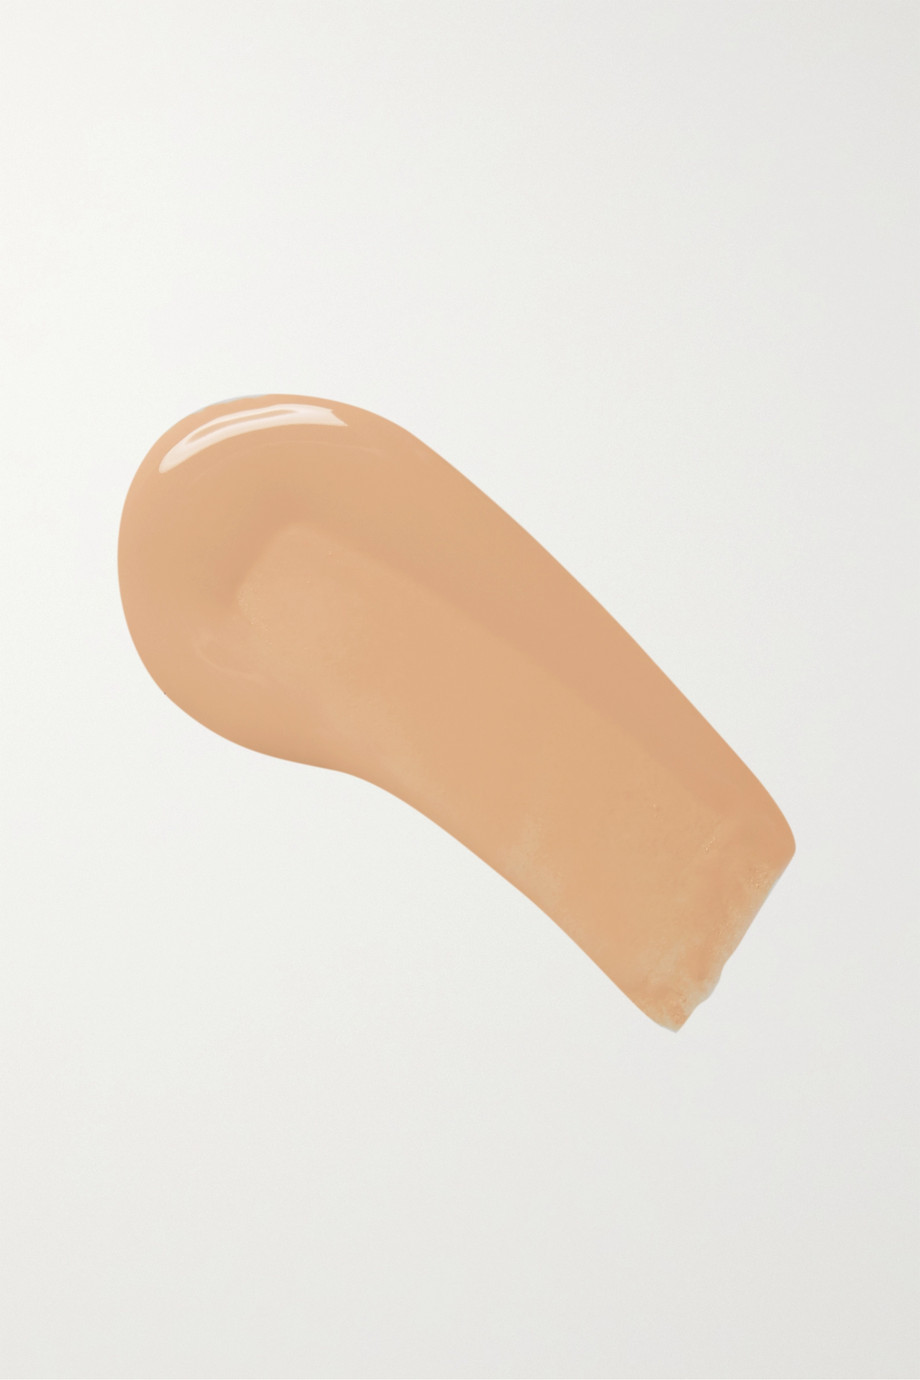 Bobbi Brown Skin Long-Wear Fluid Powder Foundation LSF 20 – Beige – Foundation